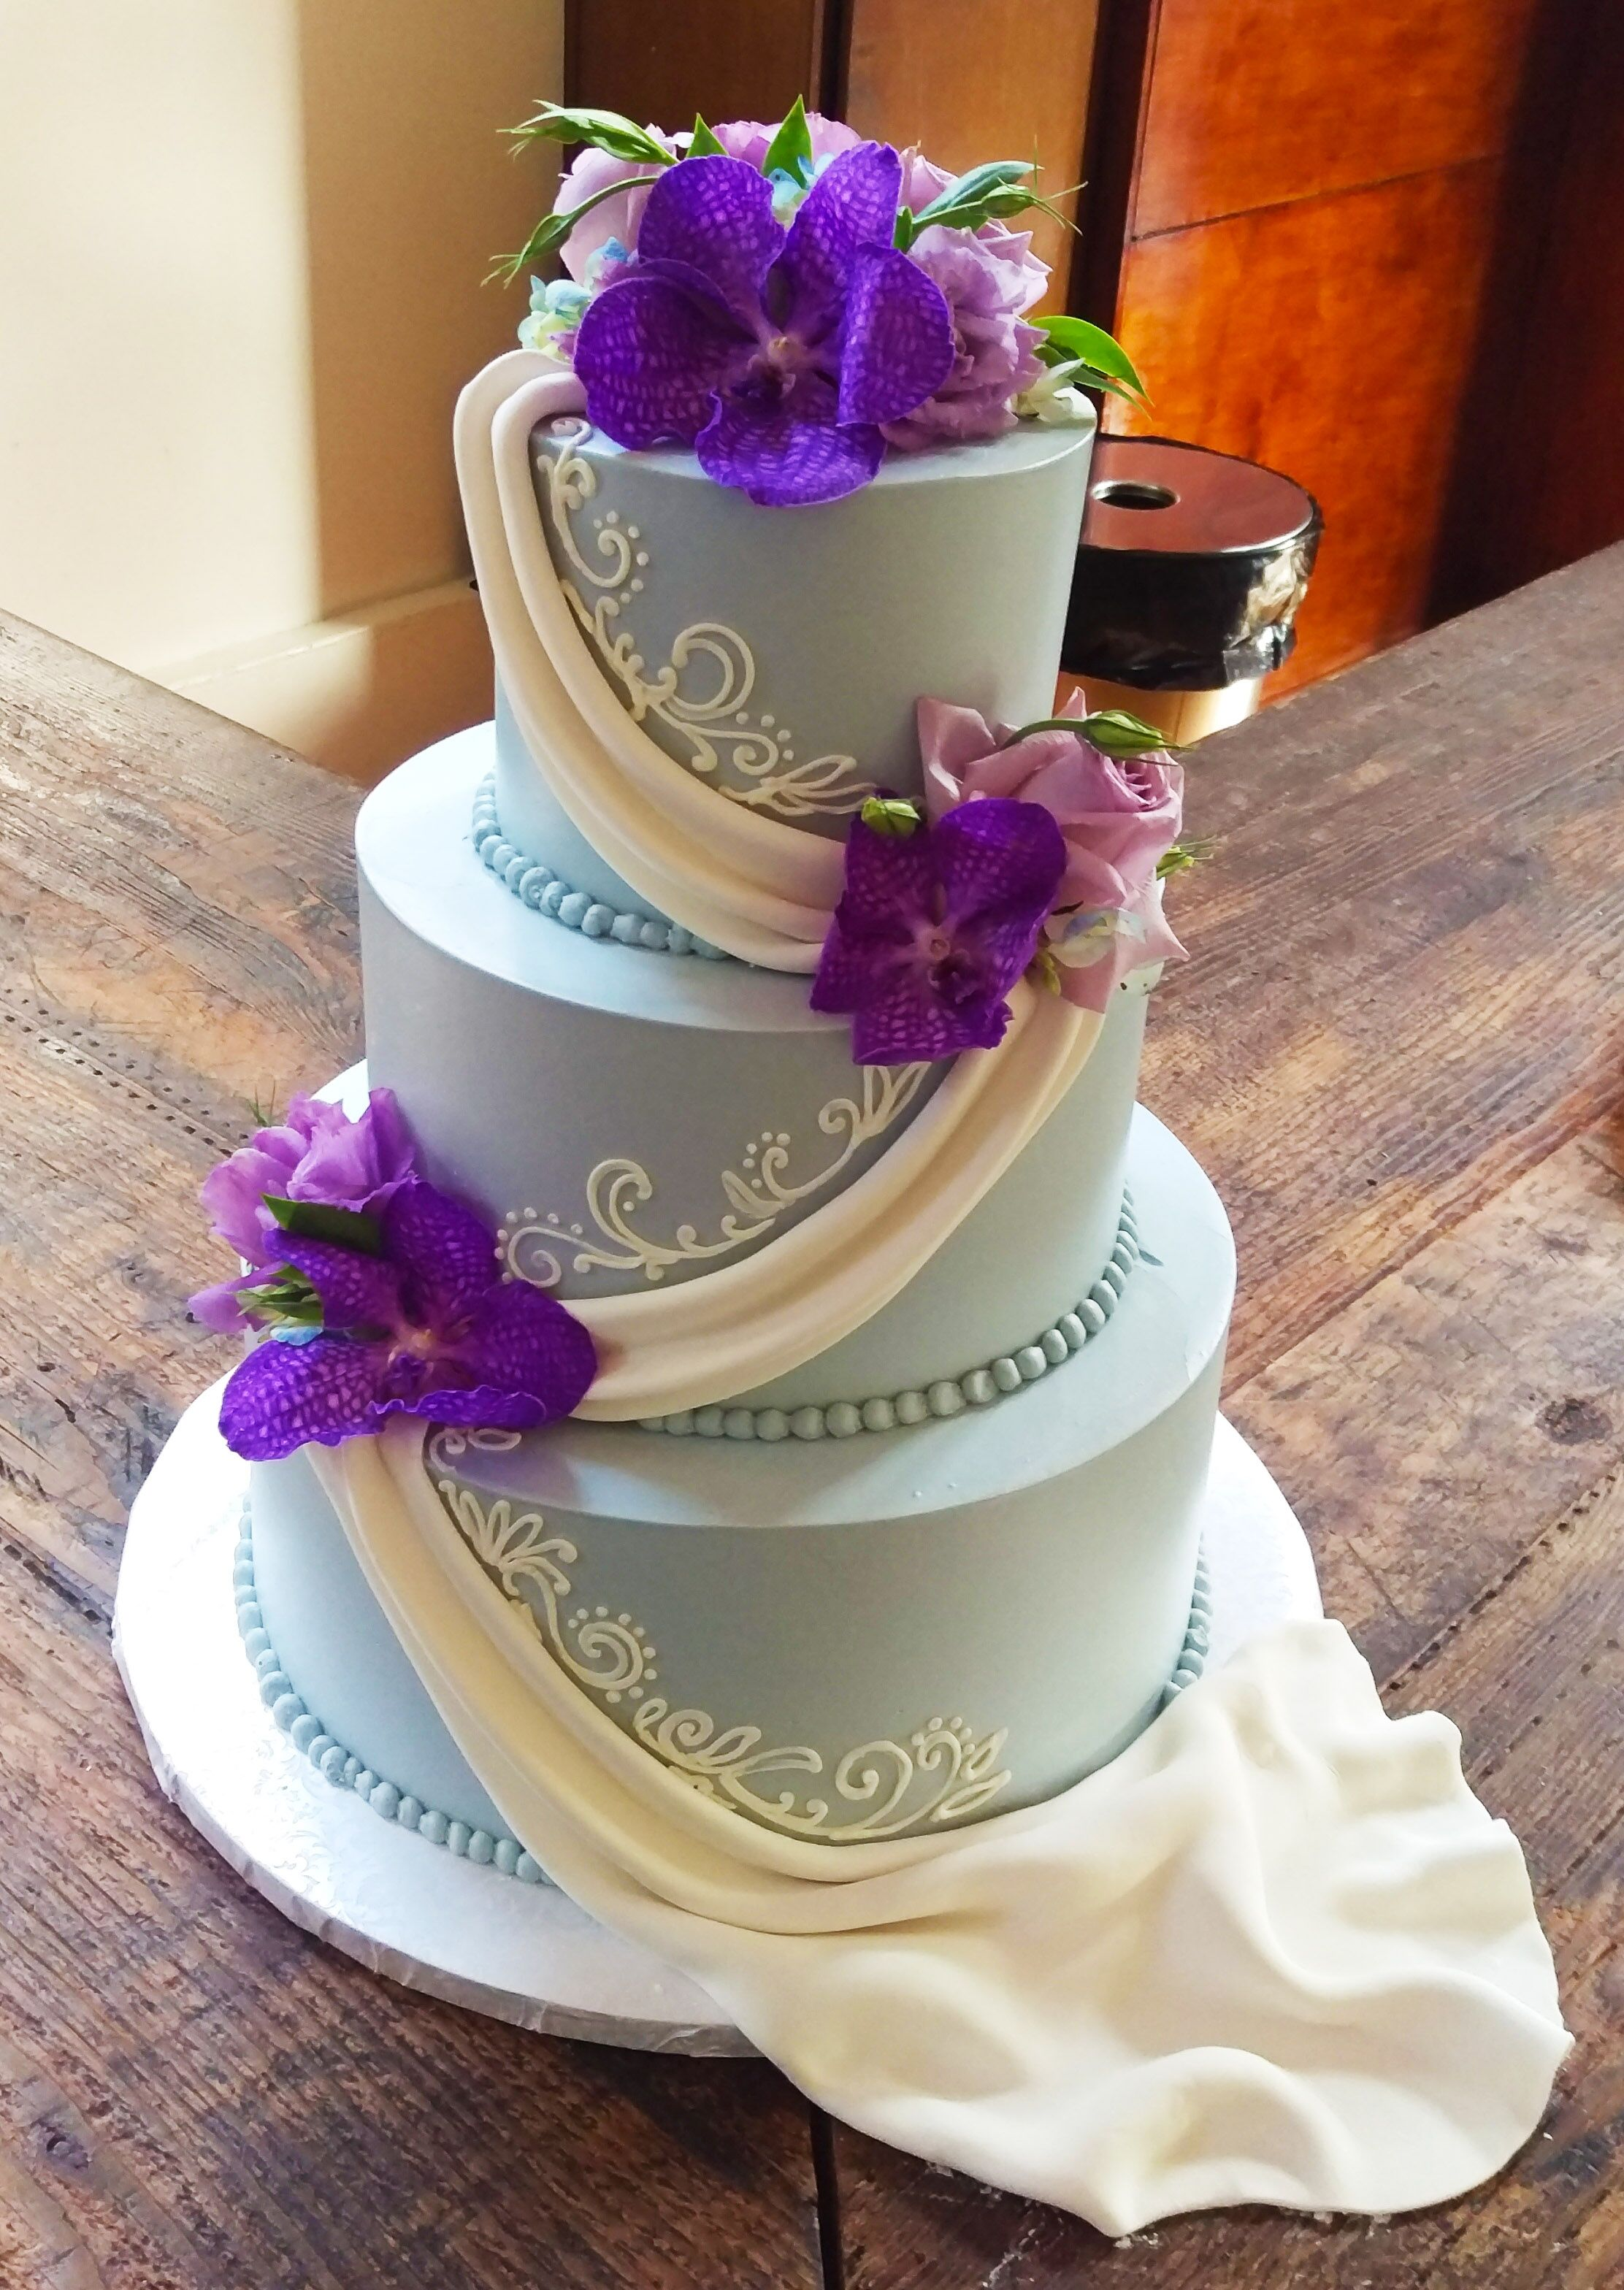 Other Wedding Cake Bakeries Like SusieCakes